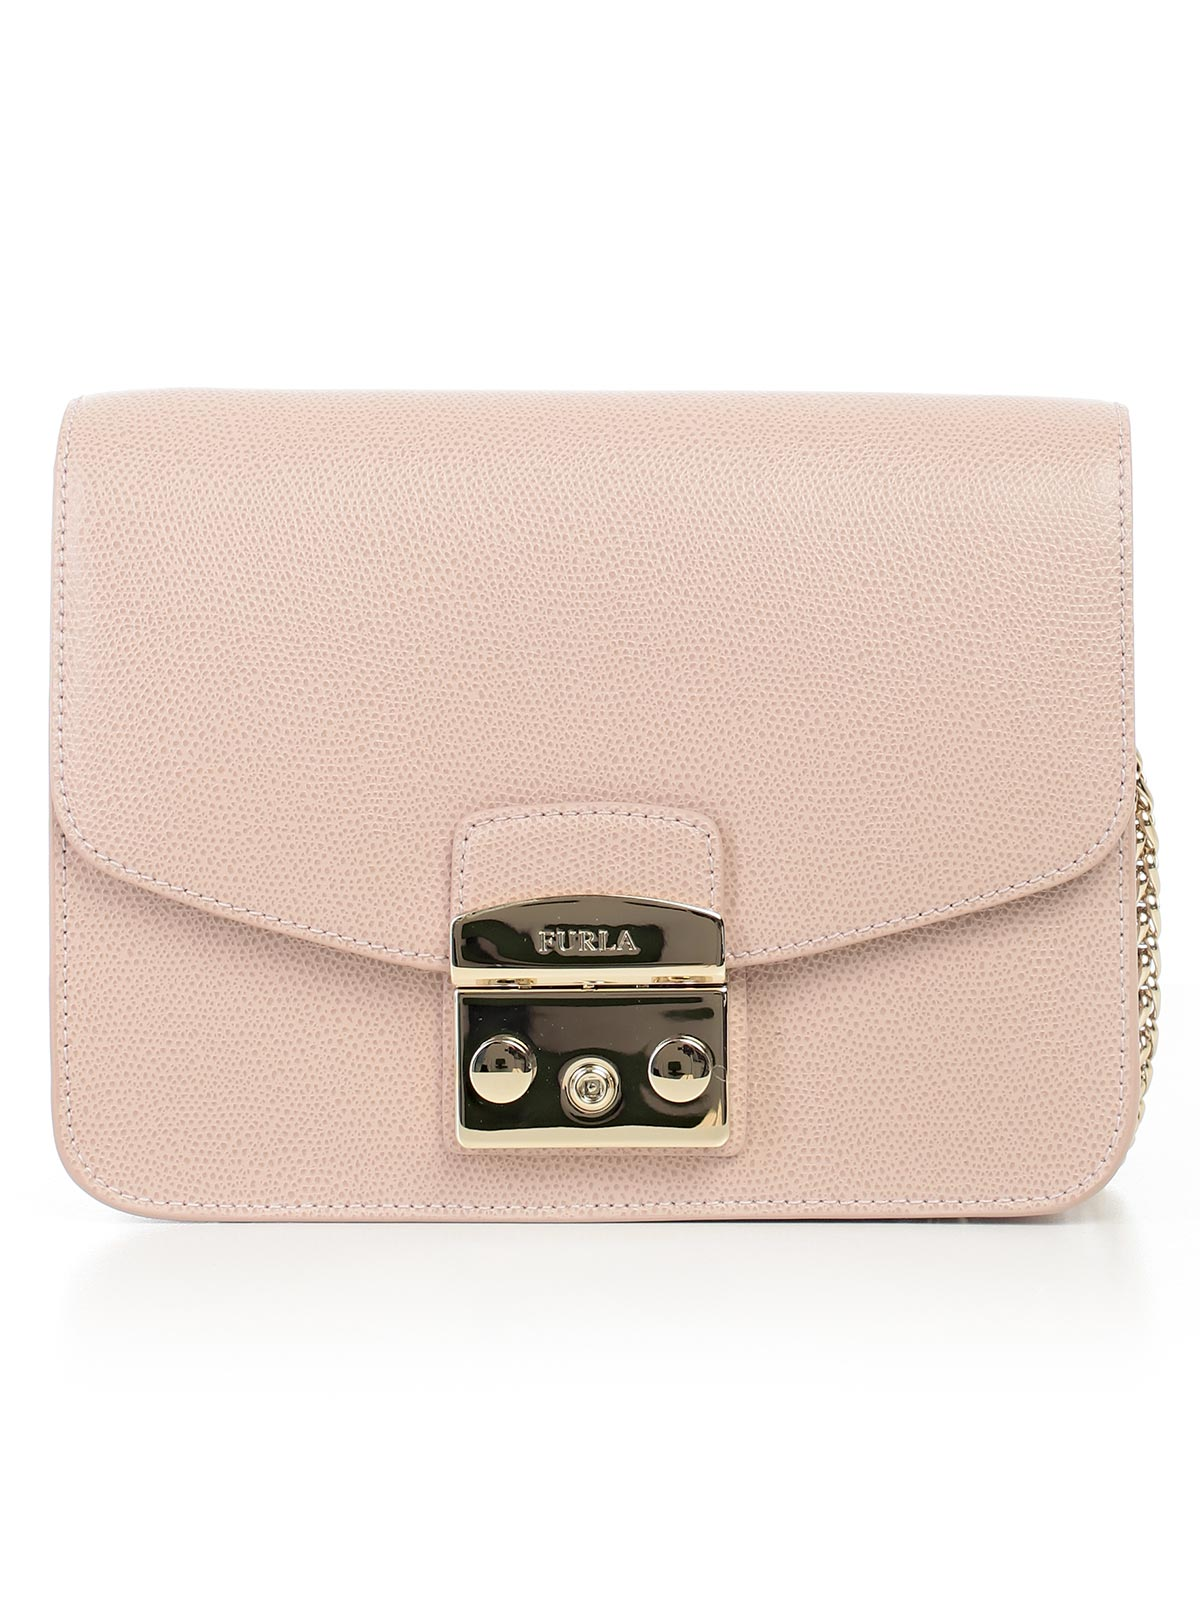 Picture of Furla Satchel & Crossbody